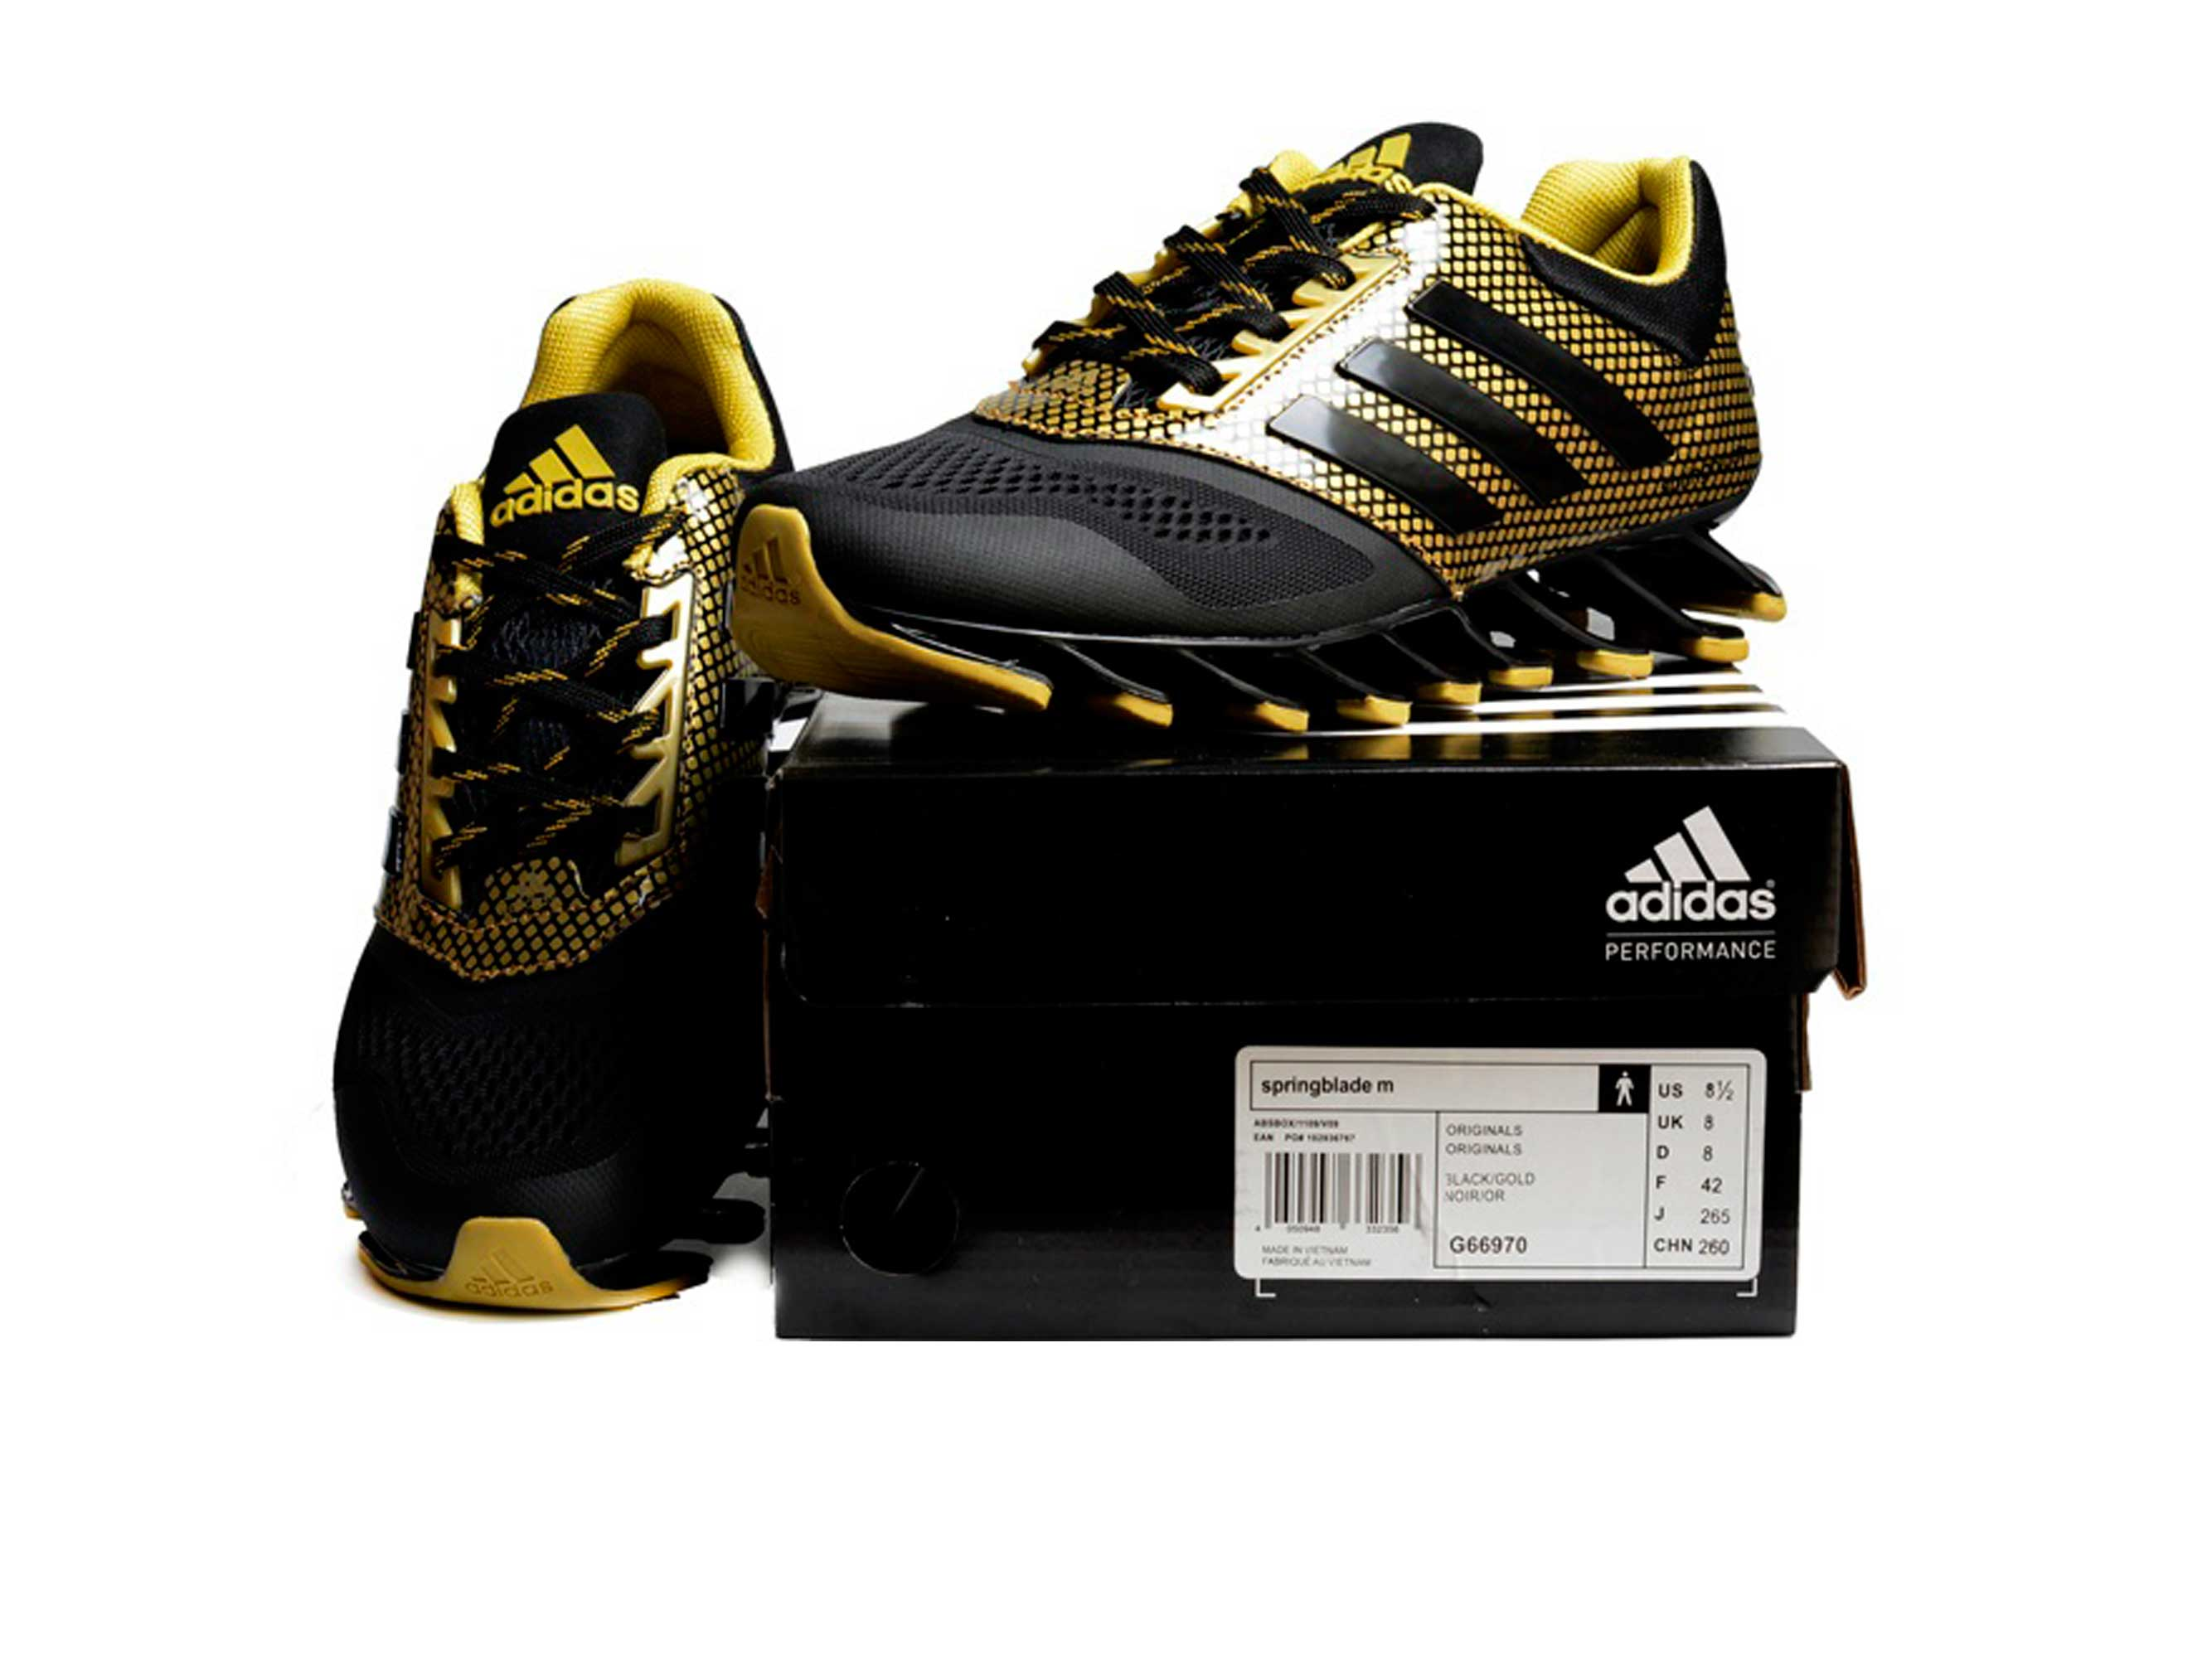 norway adidas unveils the springblade drive sneakernews f518f 3bd3a  uk  white adidas springblade drive 2.0 navy black gold aeb98 5bb69 41cbd7c20357